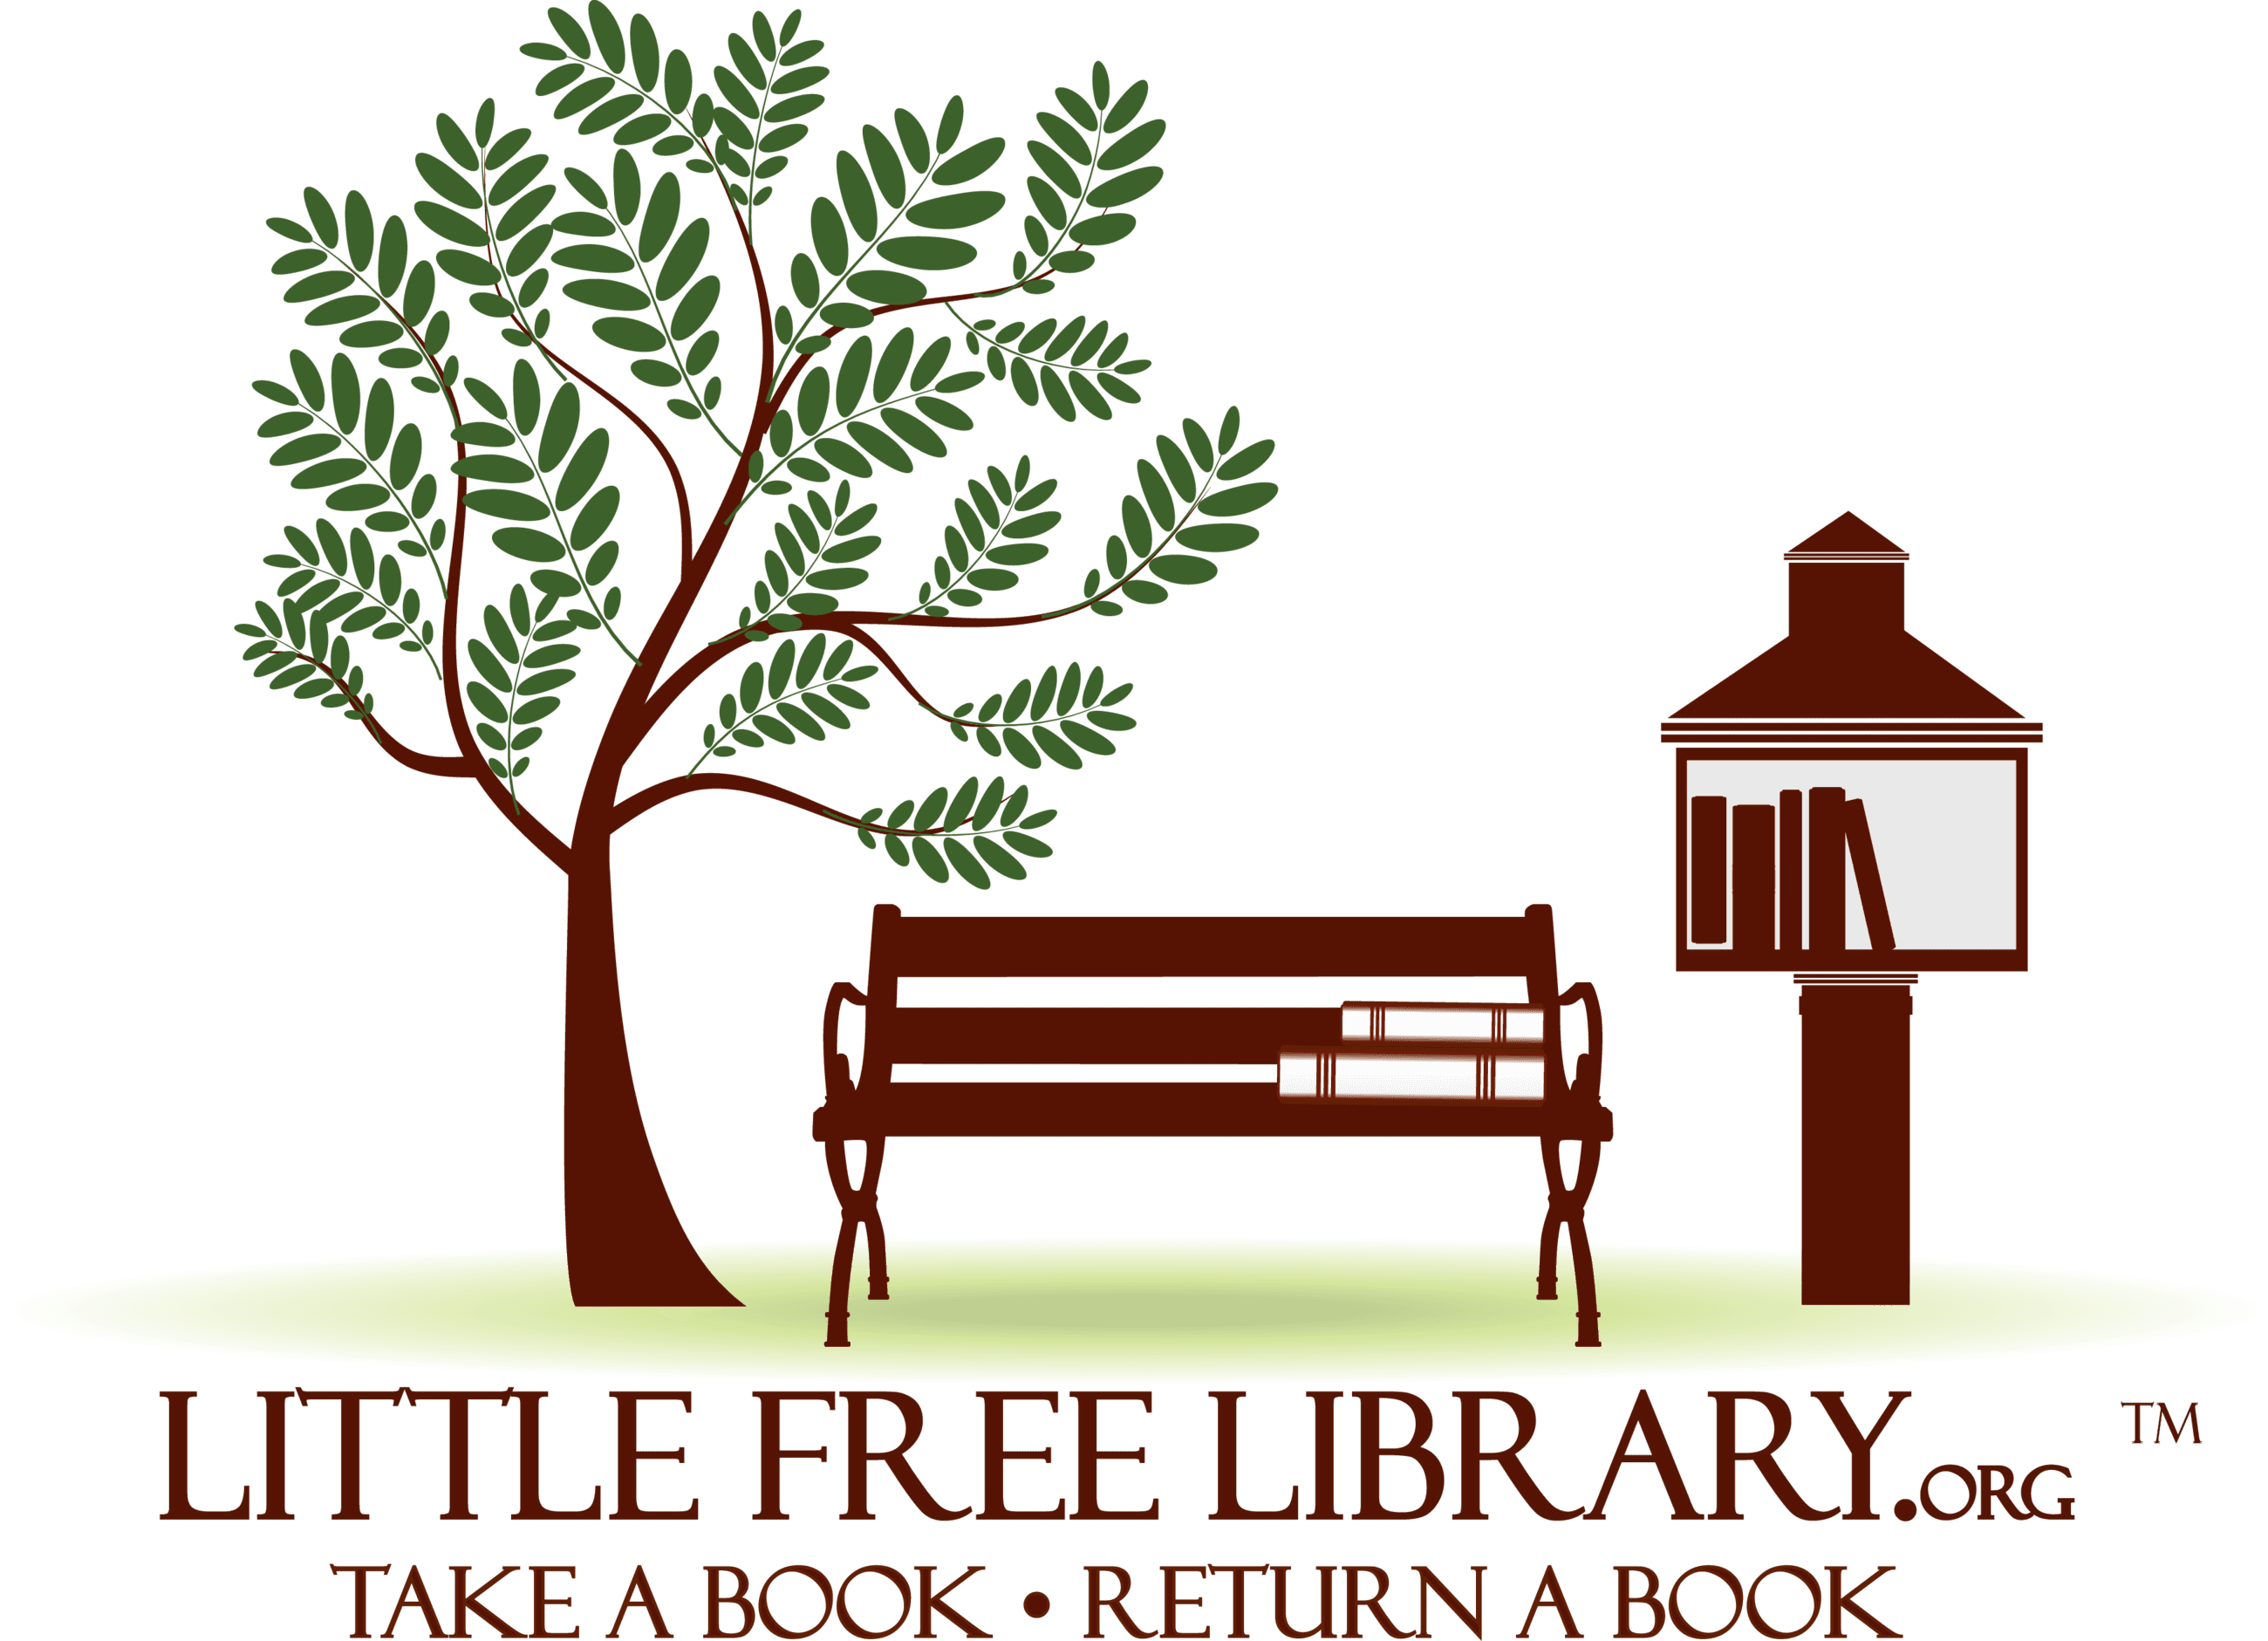 Library book return clipart jpg freeuse stock Little Free Libraries   Safety Harbor FL - Official Website jpg freeuse stock